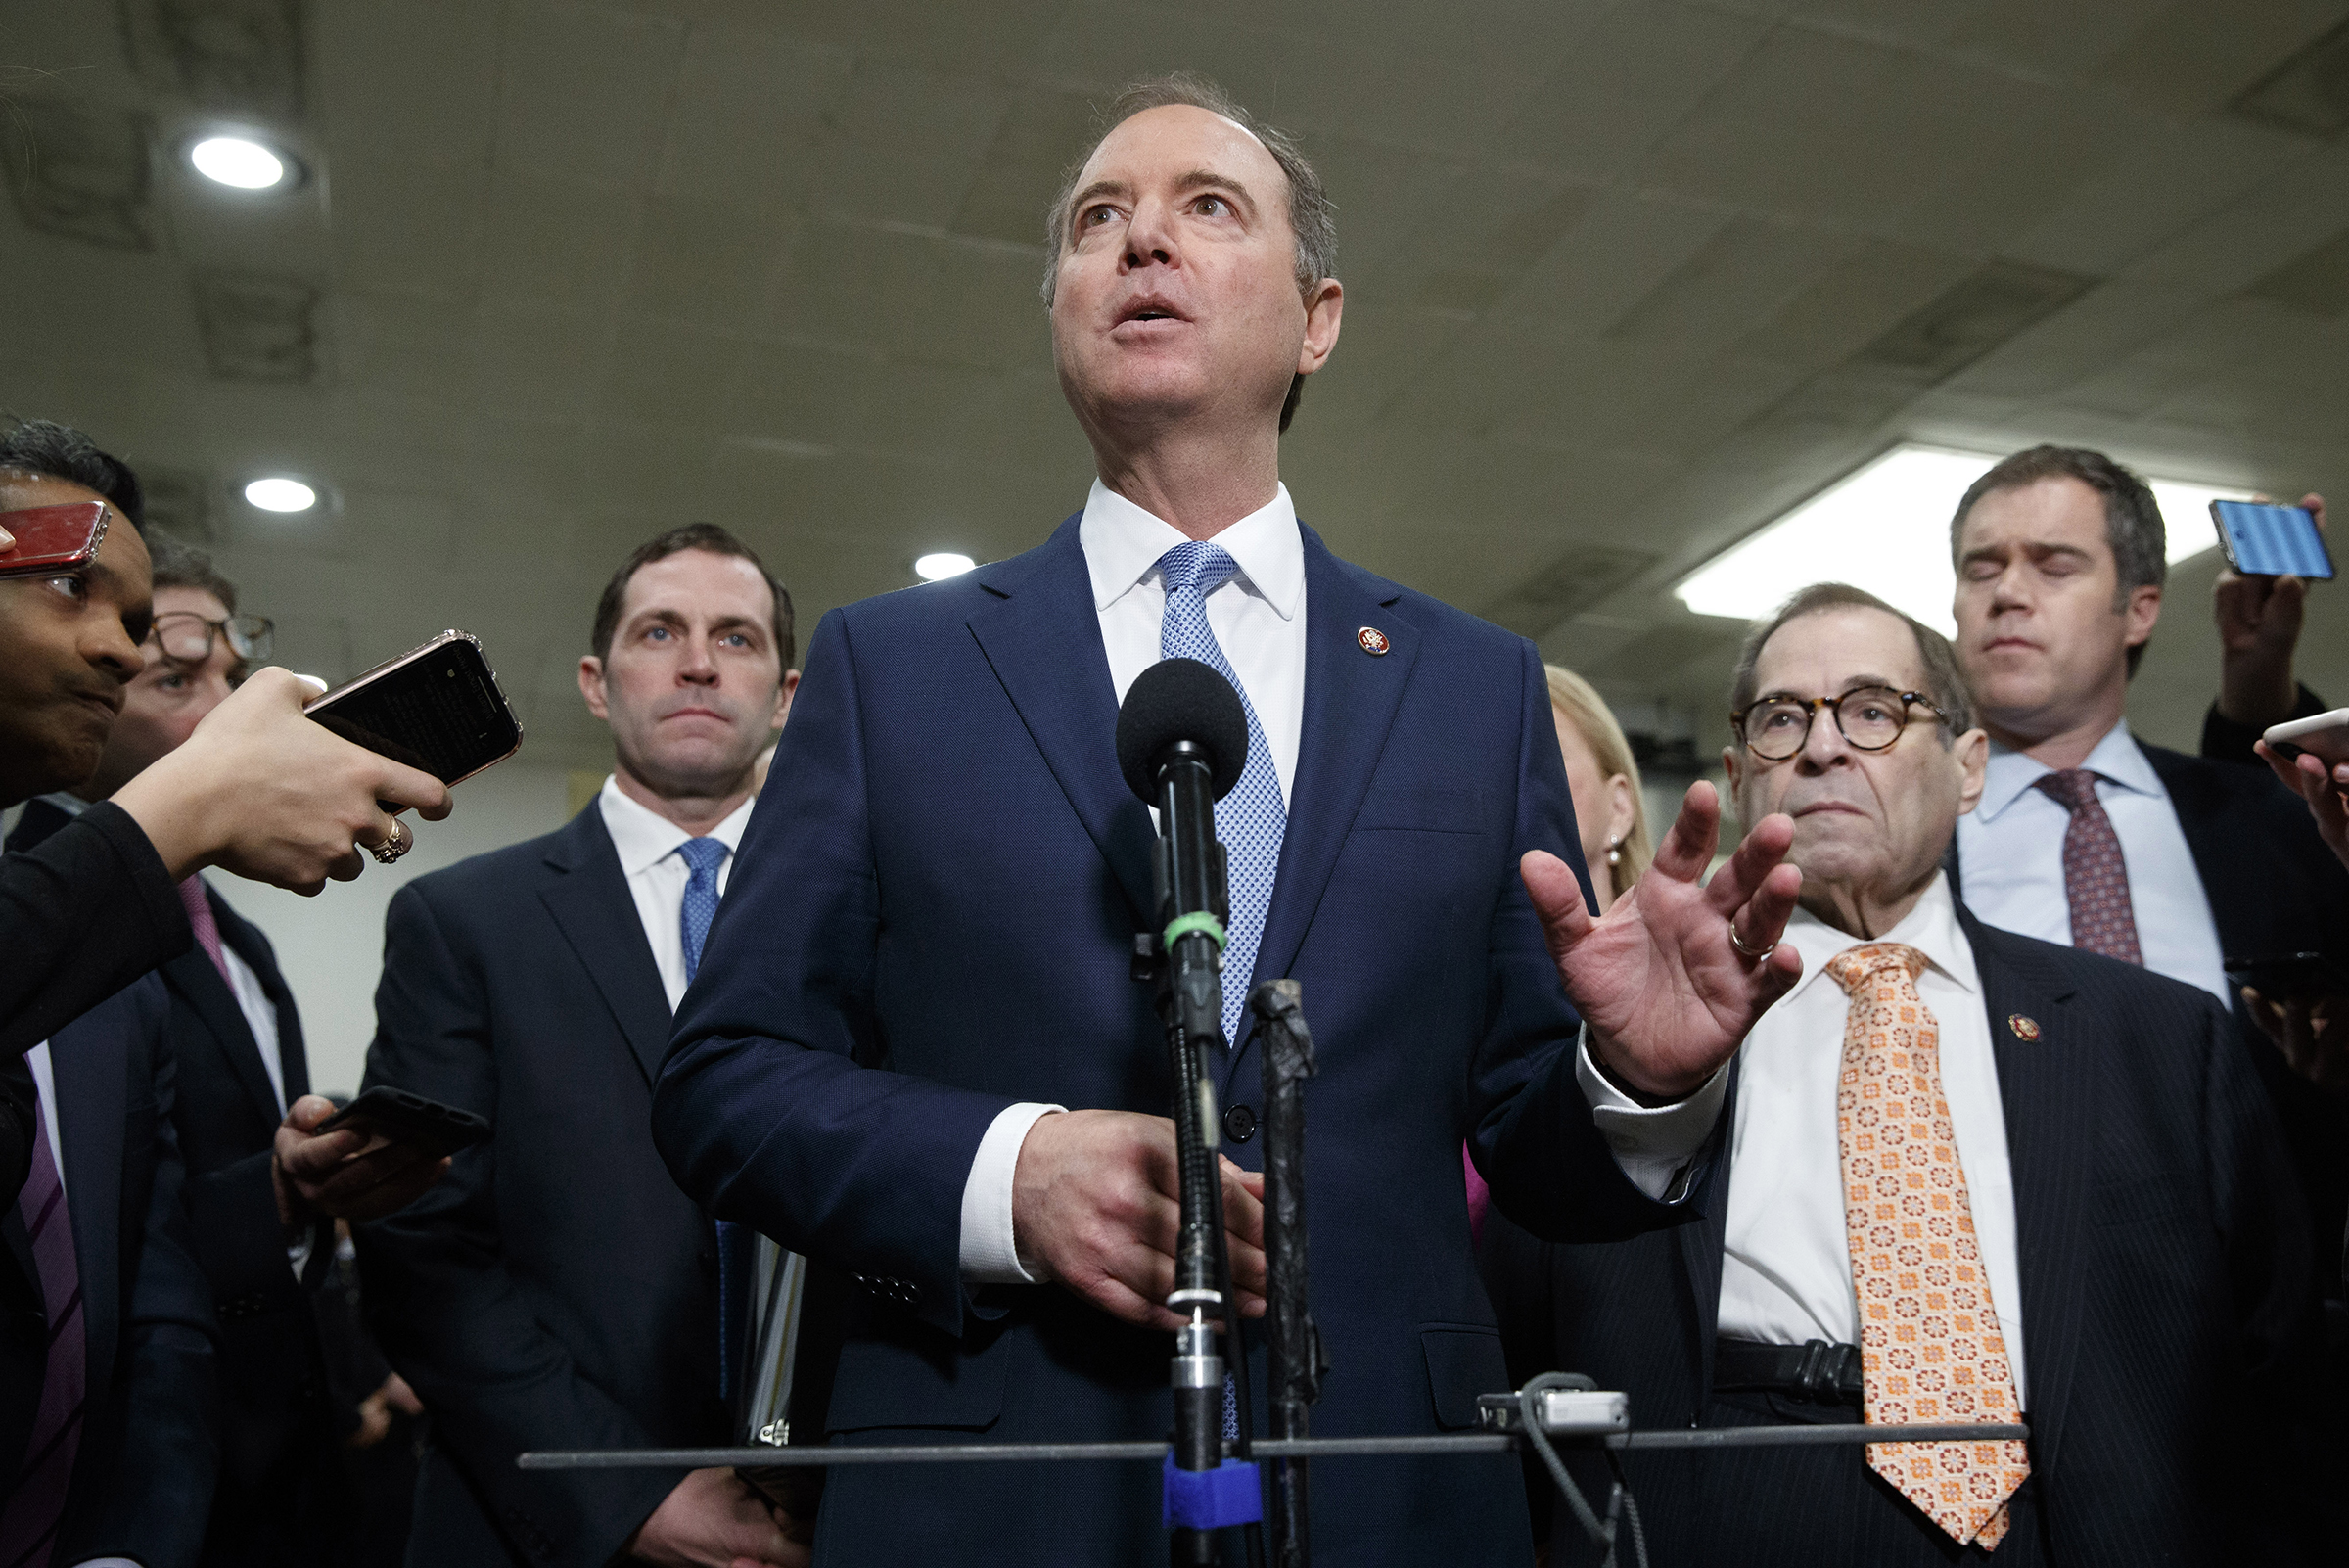 House Democratic impeachment managers including House Intelligence Committee Chairman Adam Schiff, D-Calif., center, with Rep. Jason Crow, D-Colo., left, and Judiciary Committee Chairman Jerrold Nadler, D-N.Y., speak to the media before attending the fourth day of the impeachment trial of President Donald Trump on Jan. 24, 2020 in Washington.